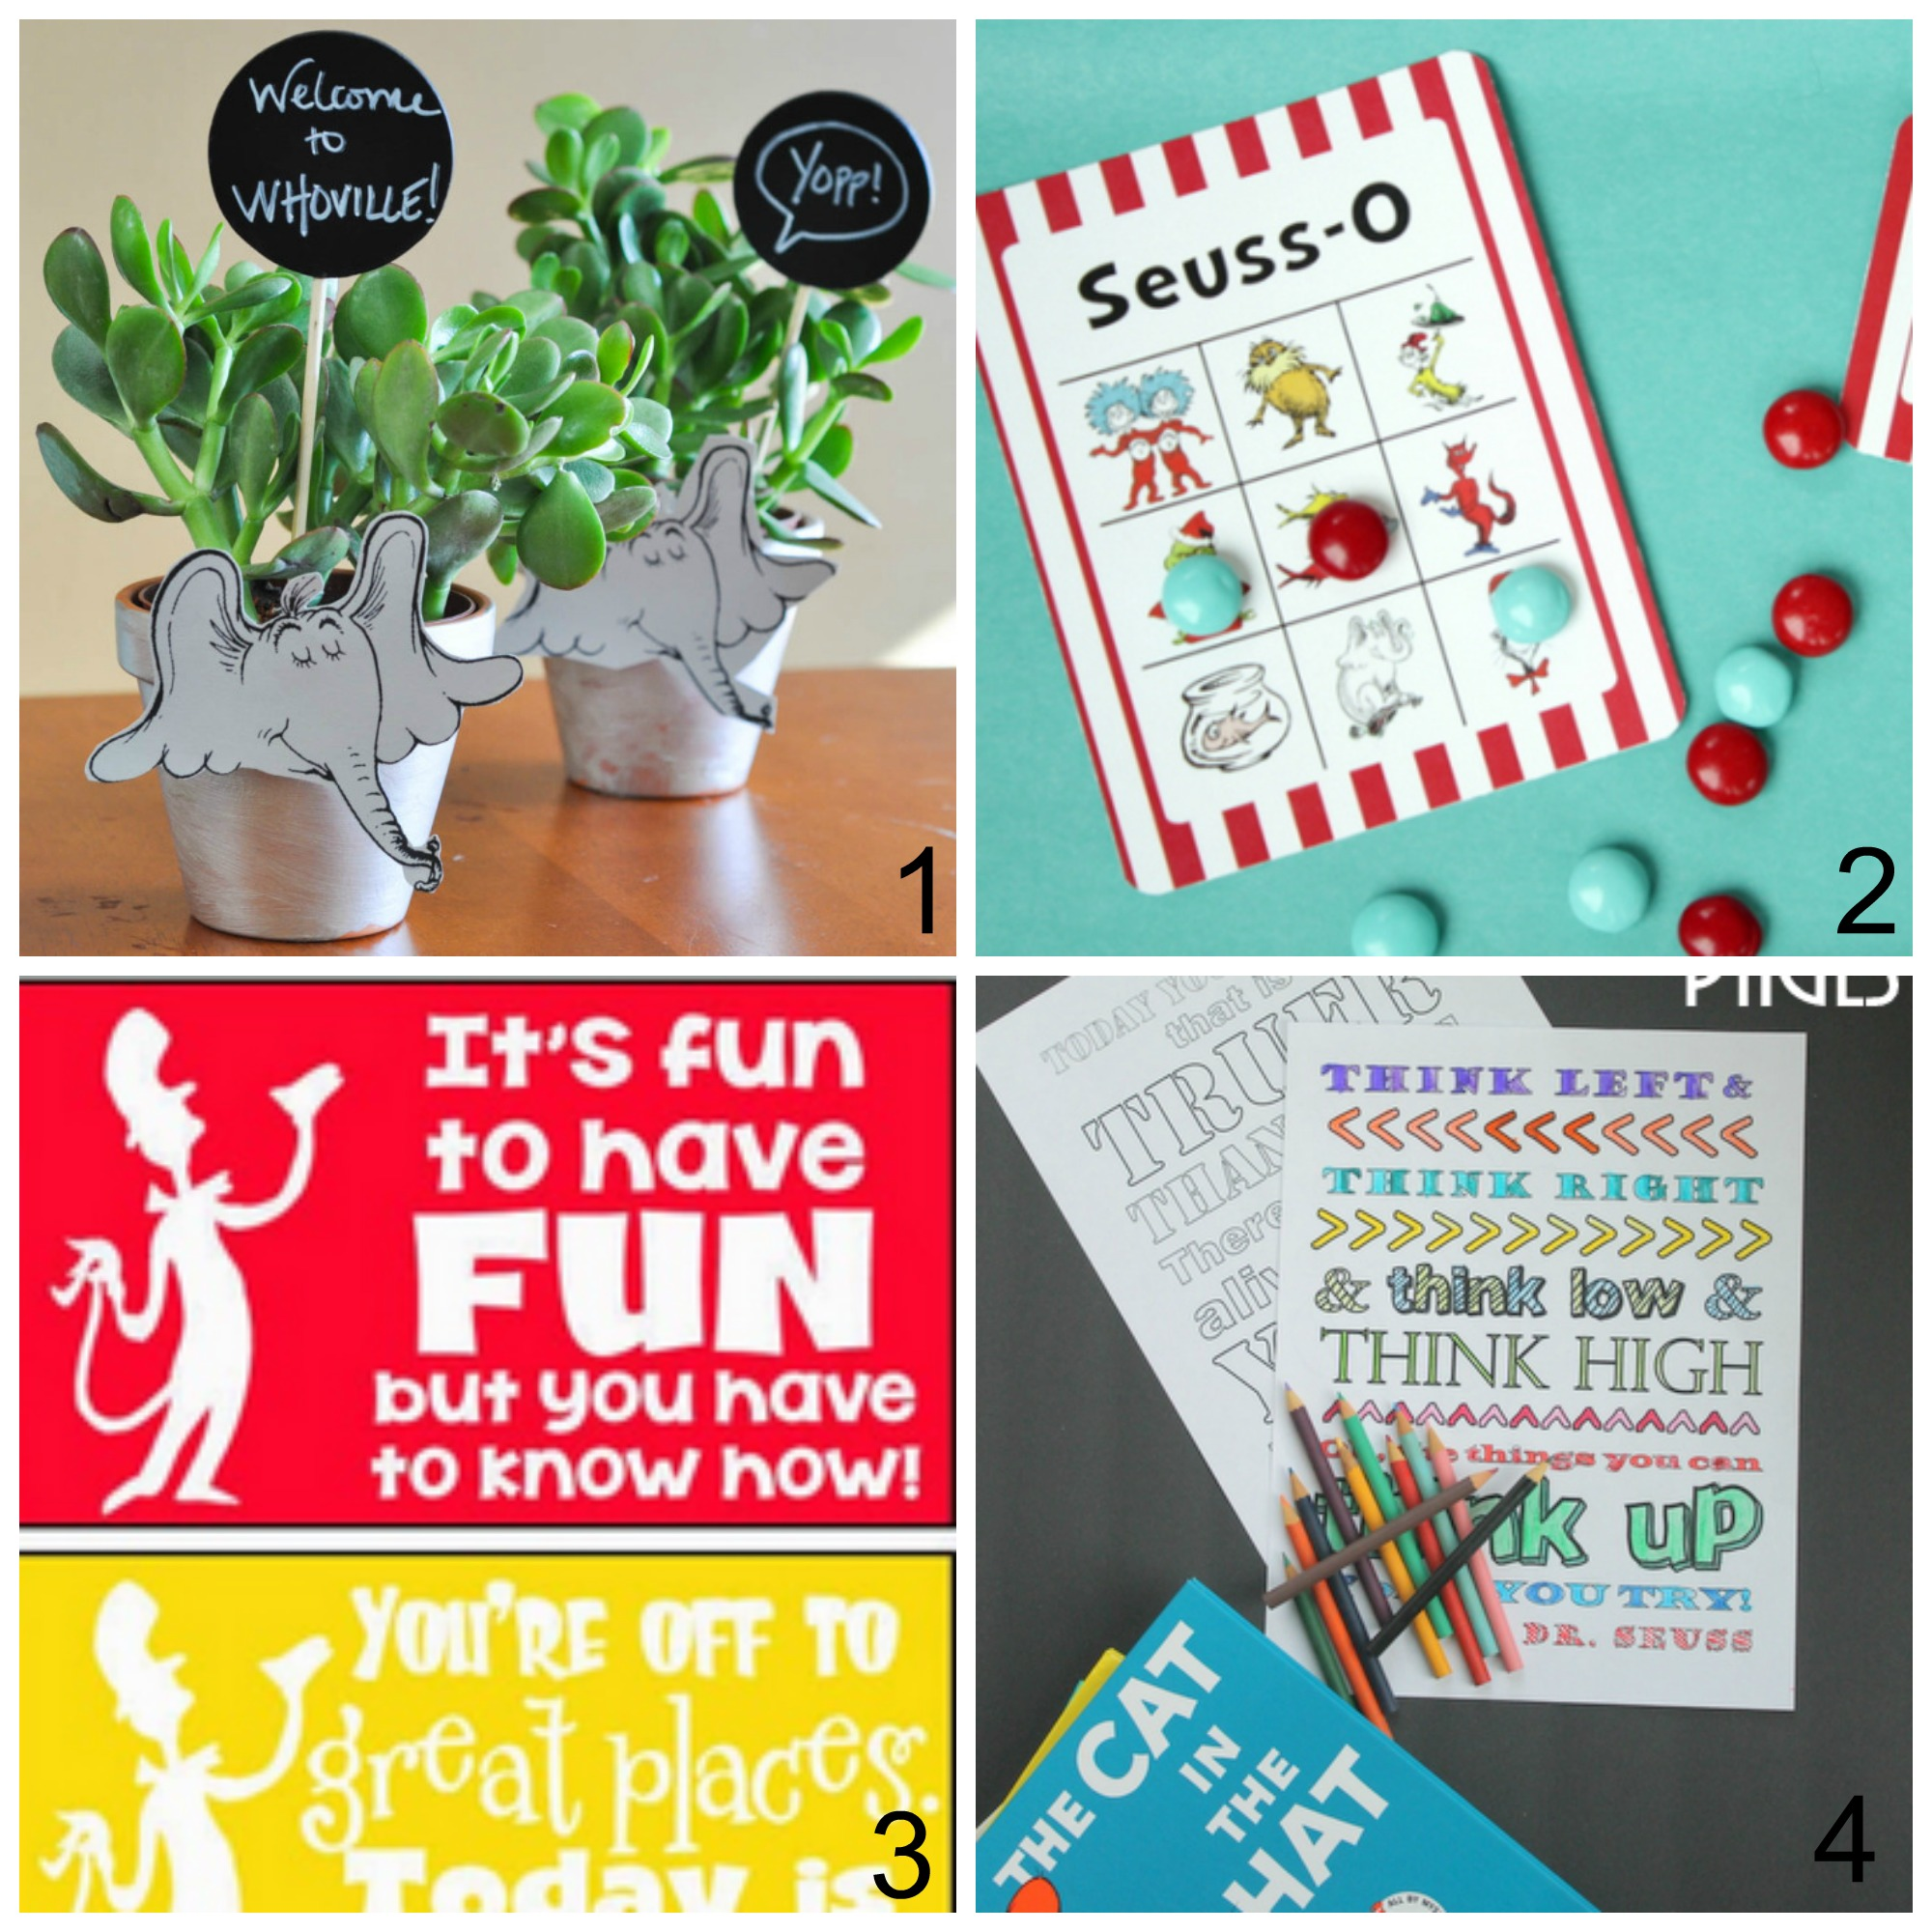 picture relating to Truffula Seeds Printable named 25 Entertaining Dr. Seuss Snacks and Crafts Suitable for Birthday or